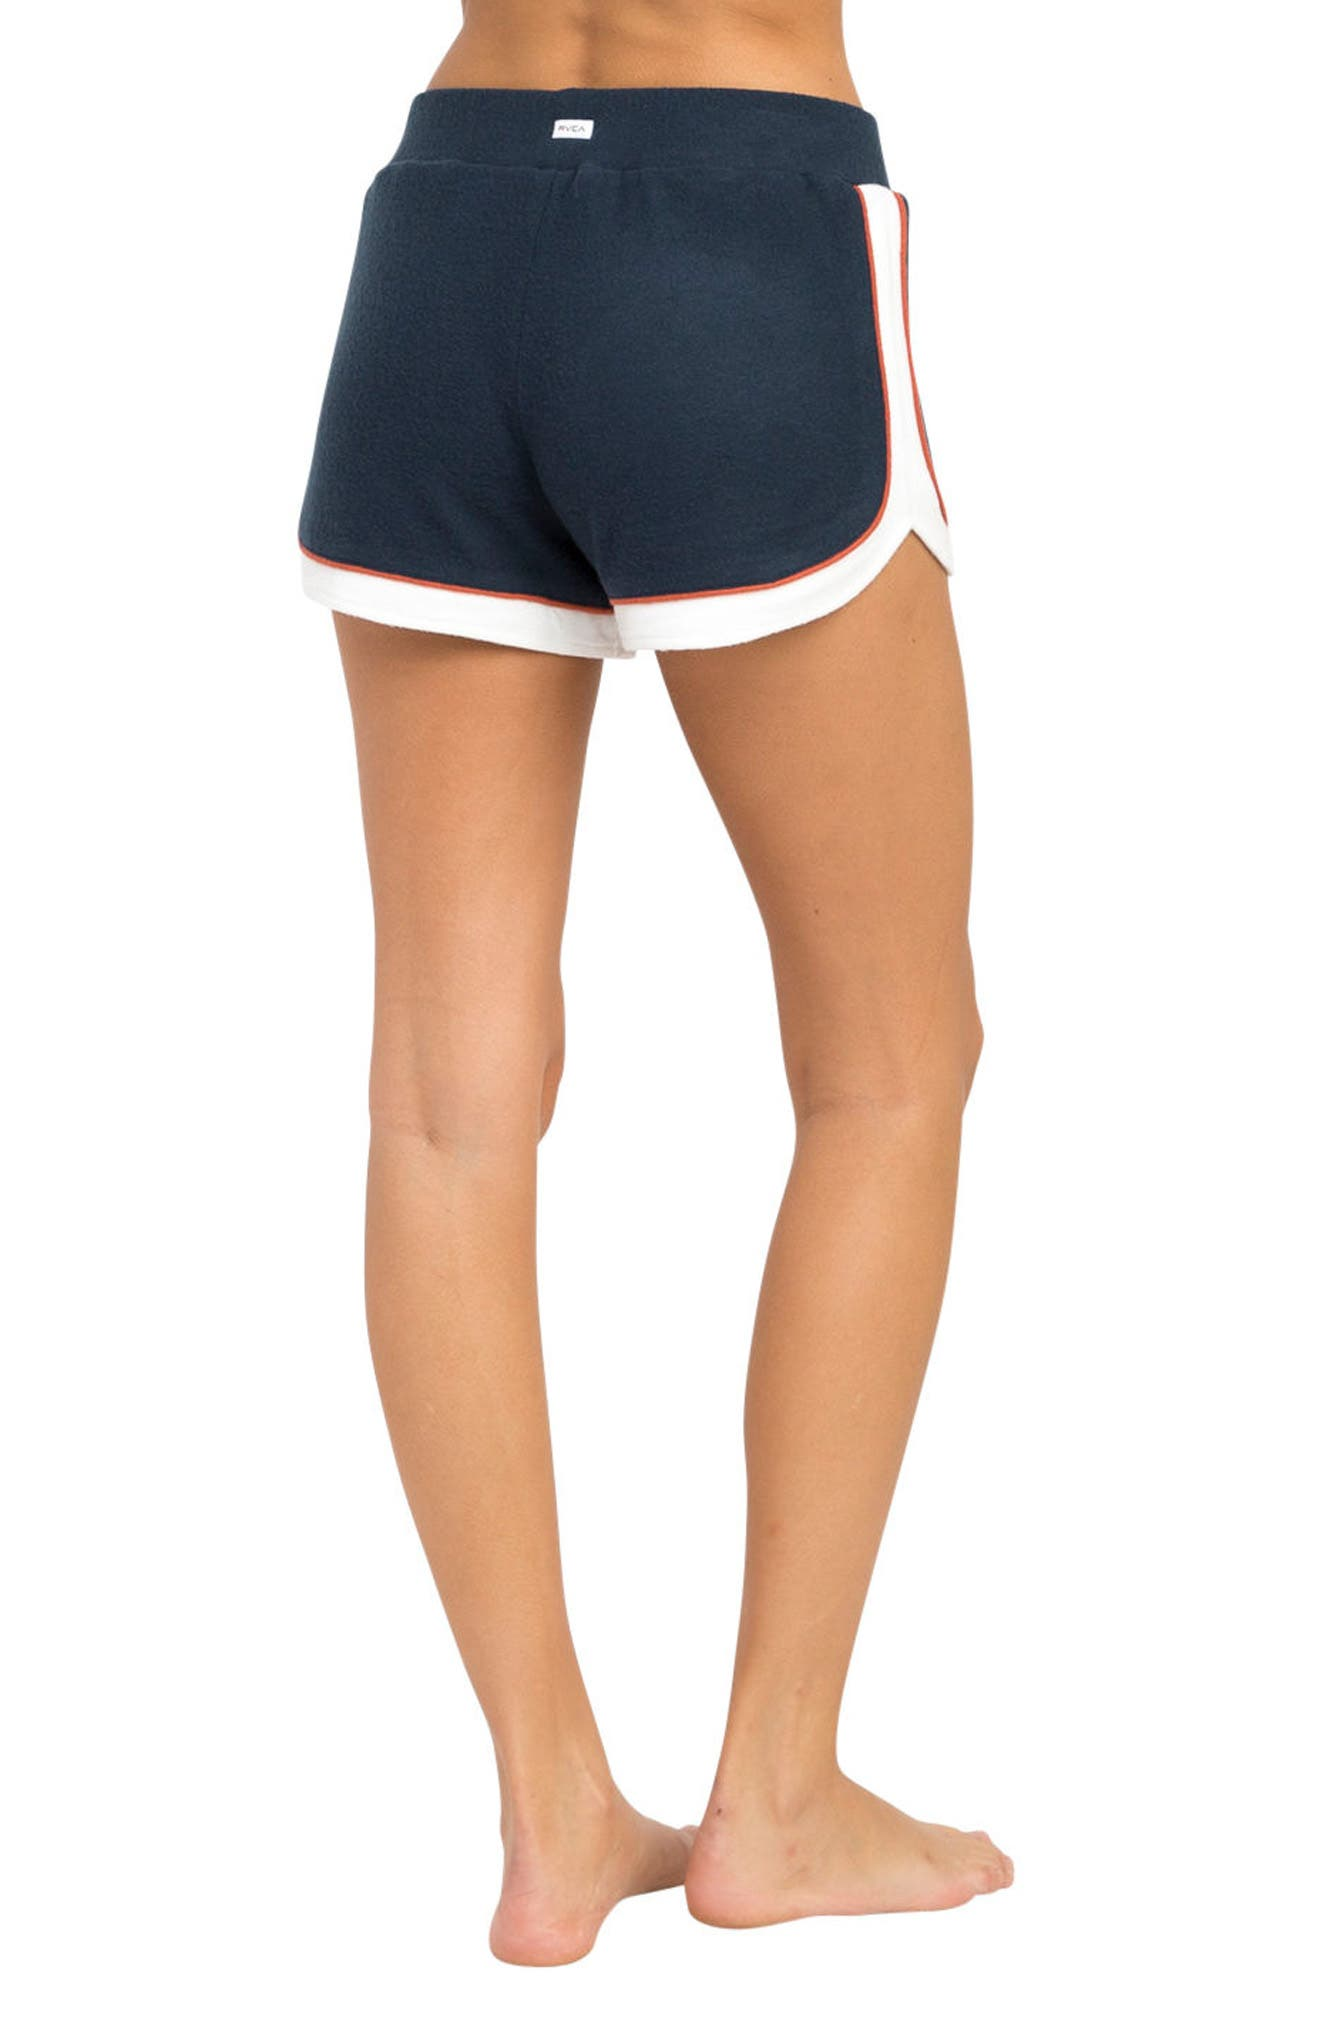 Reversion Dolphin Shorts,                             Alternate thumbnail 2, color,                             Navy